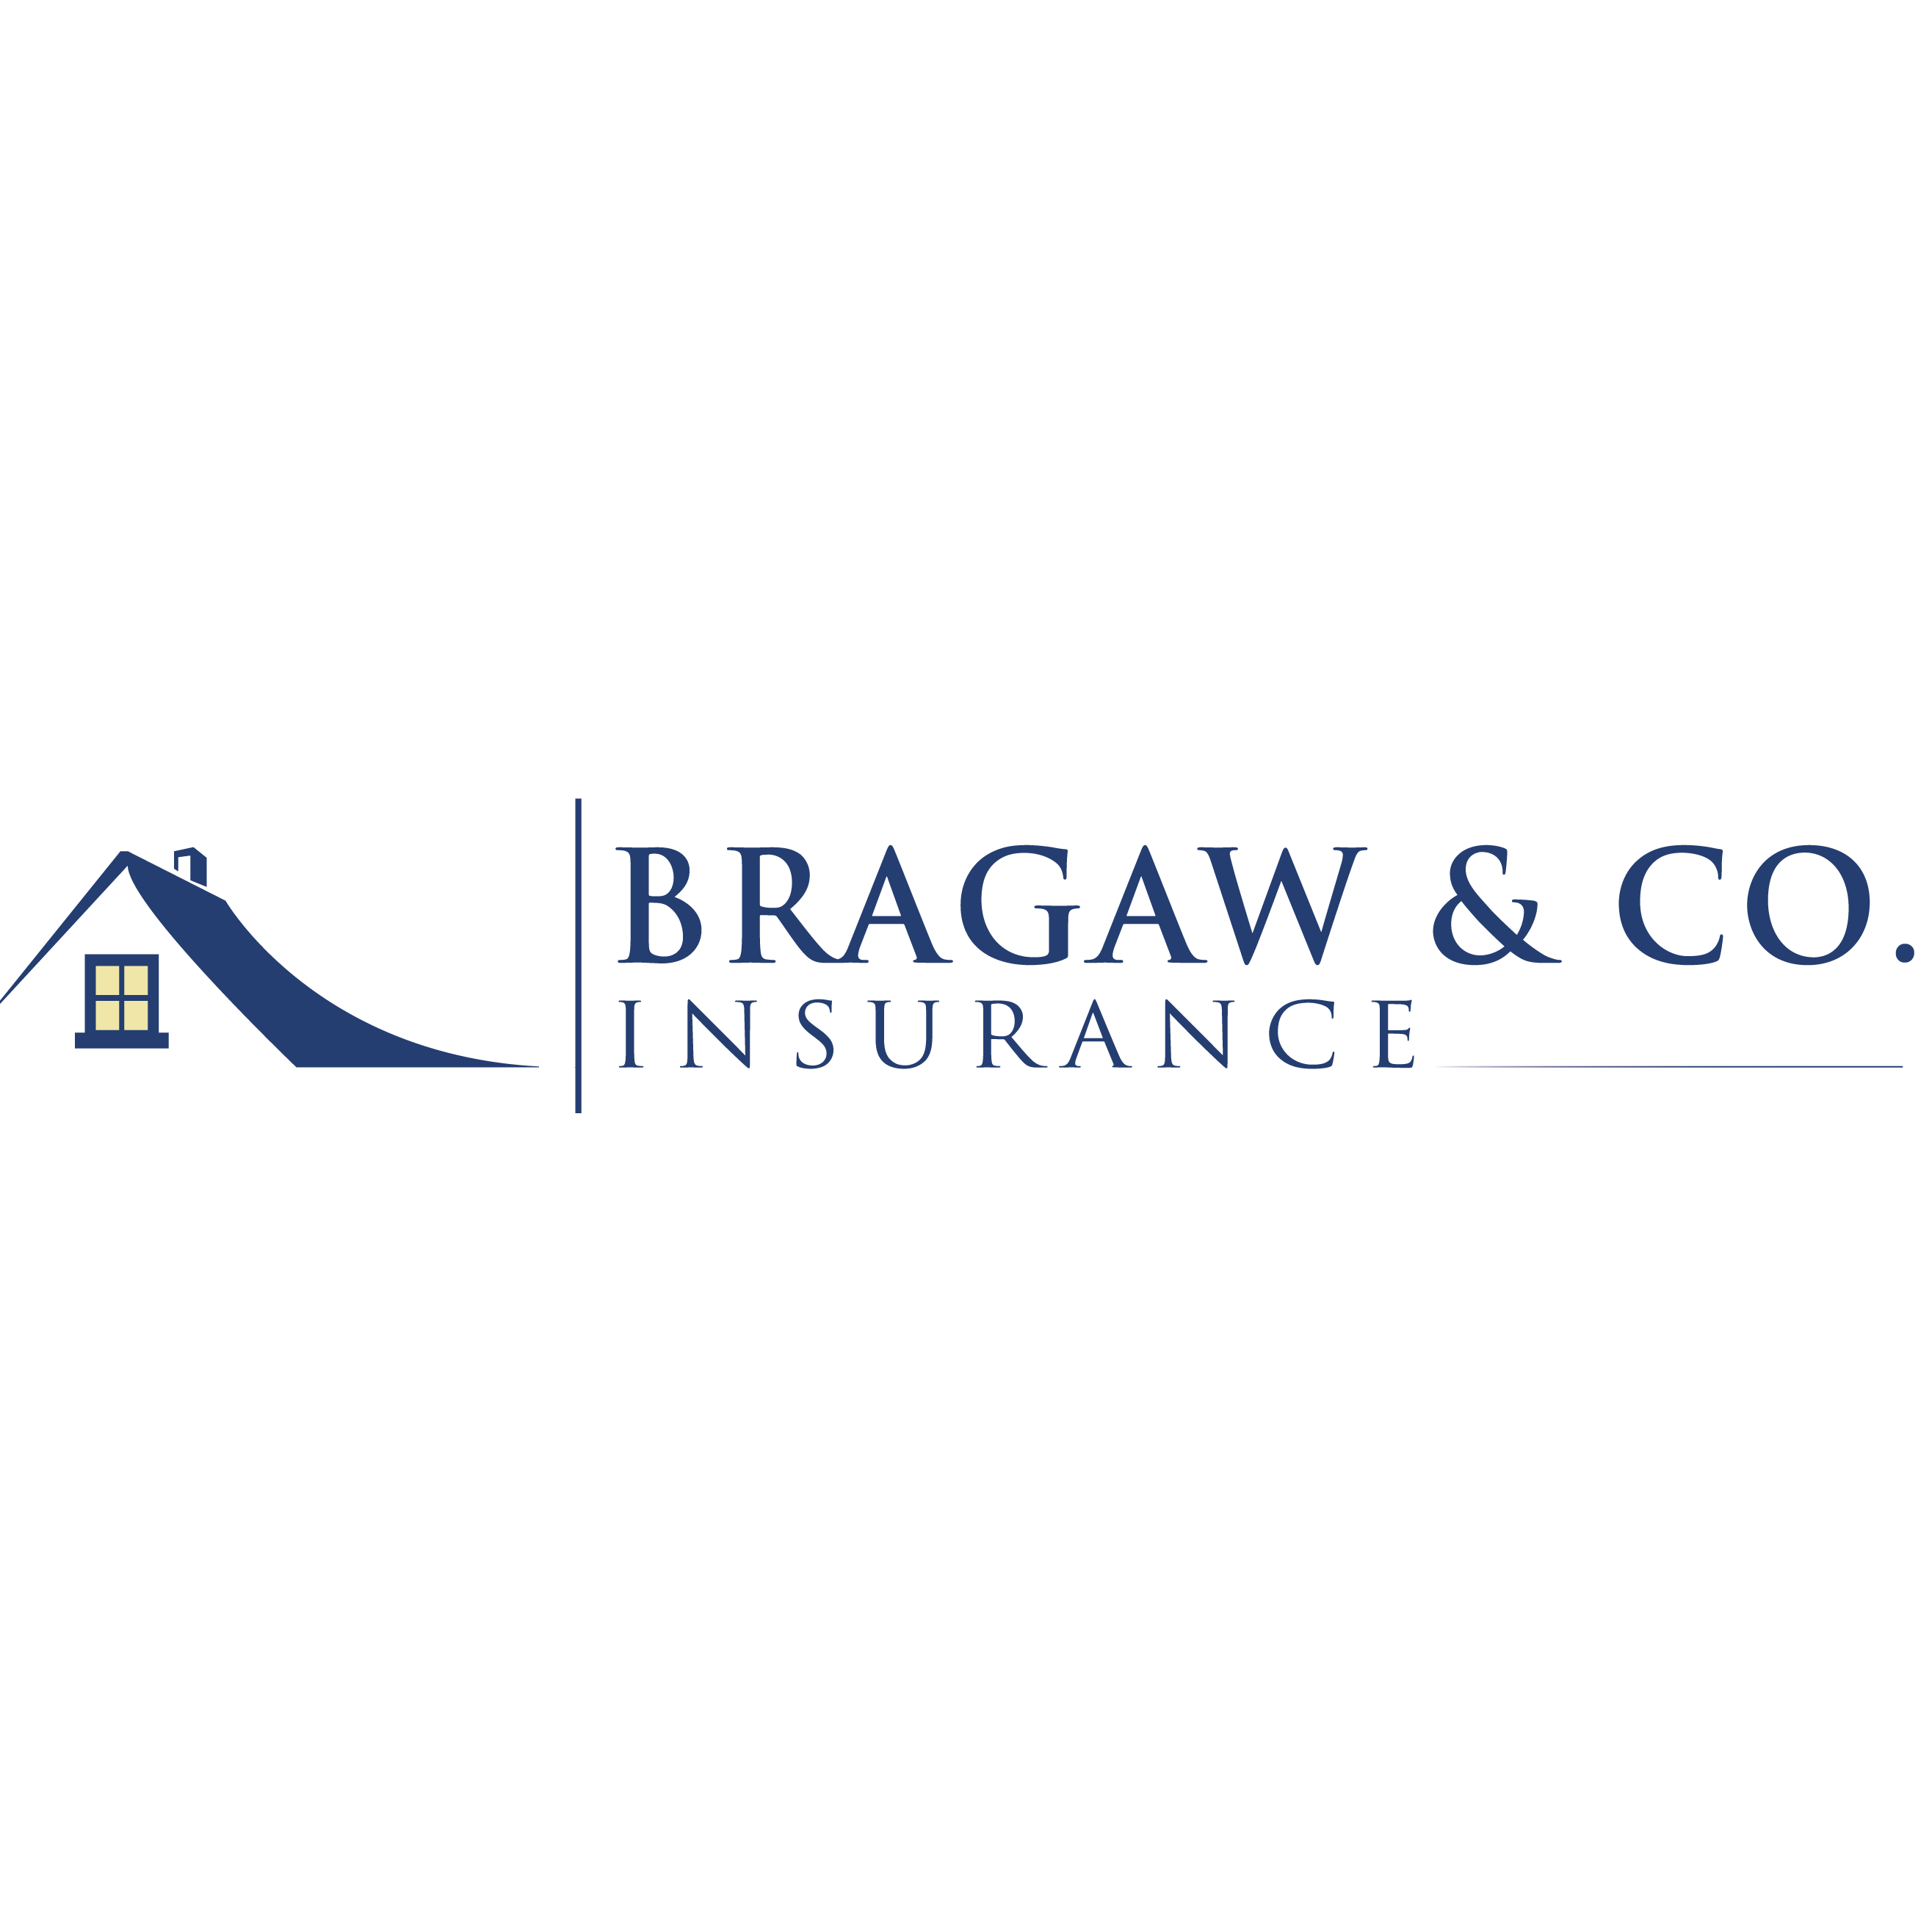 Bragaw and Co. Insurance